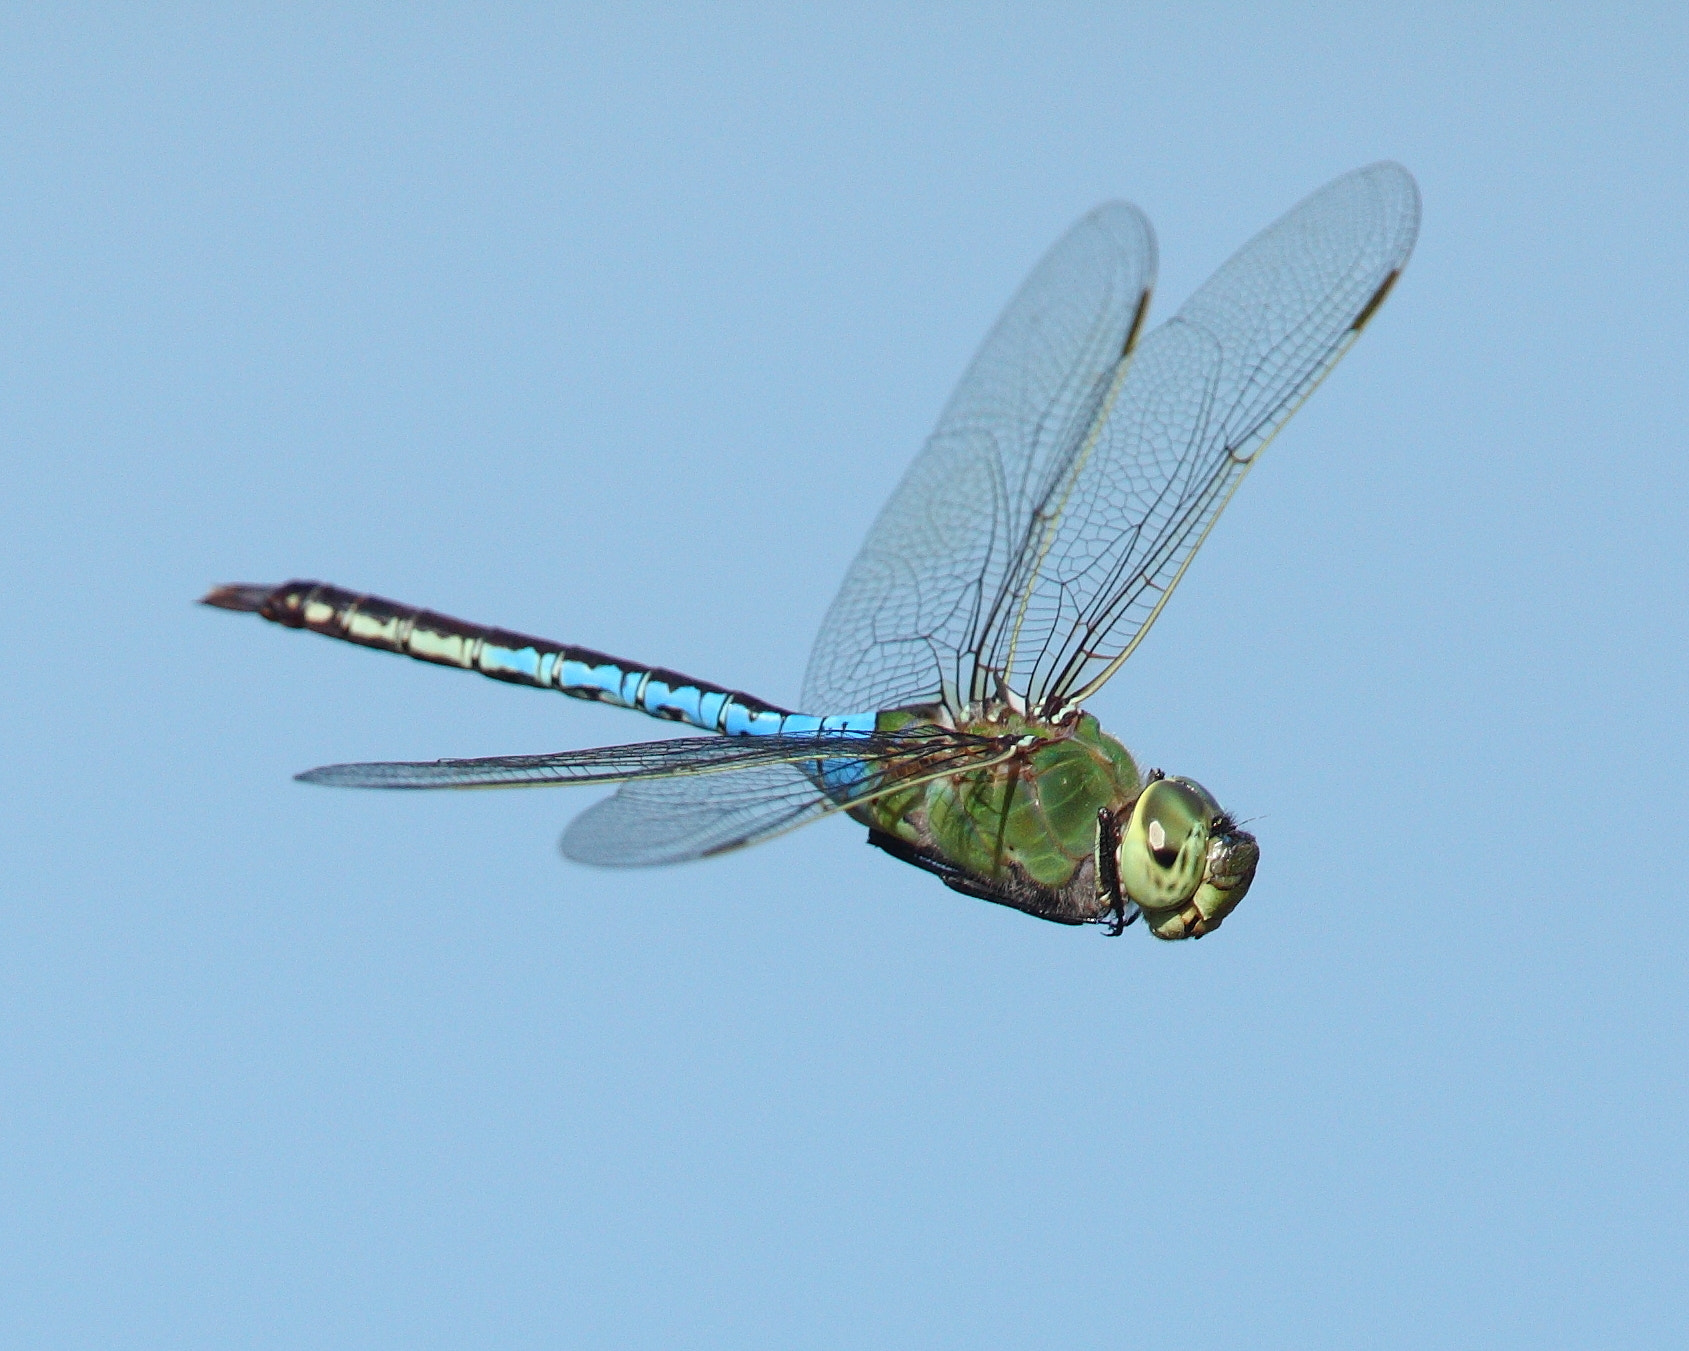 Photograph Dragonfly by Chim Co on 500px